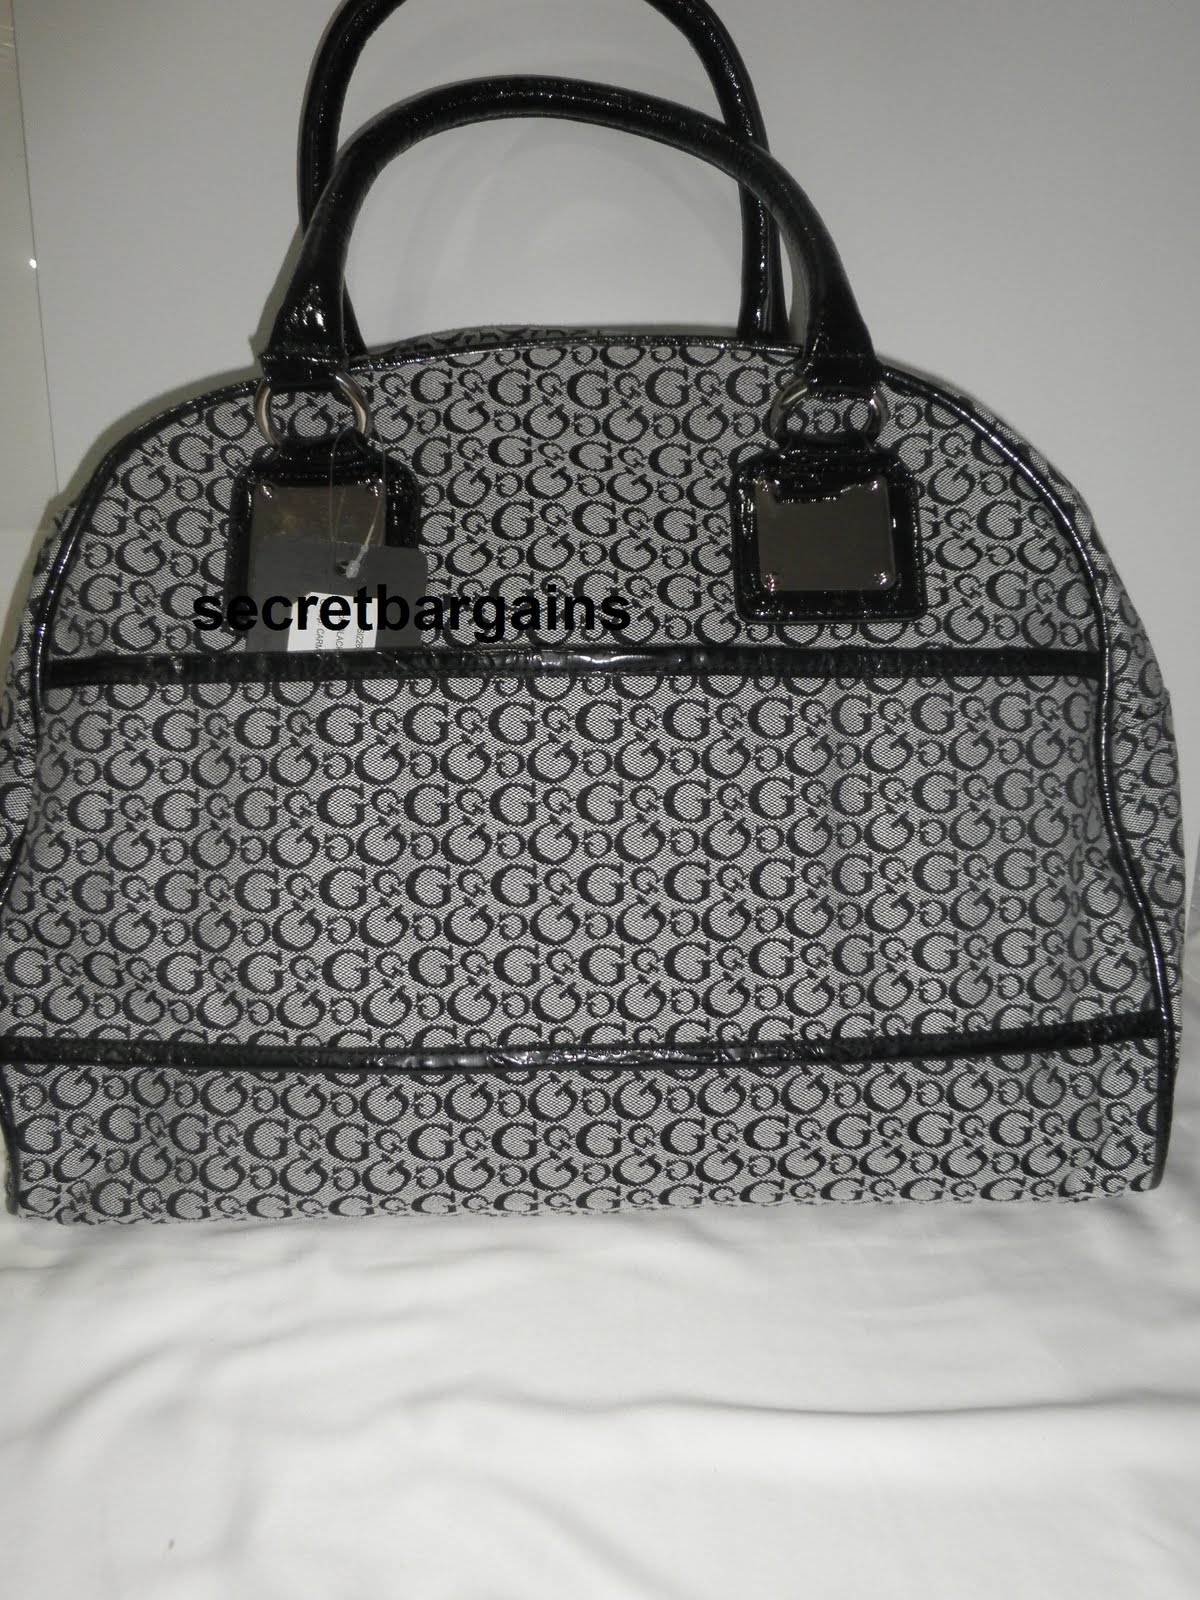 Guess Dome Las Travel Bag Top Zip Lined Detachable Shoulder Strap Interior Pocket And Two Slip Pockets Front Logo Plaque